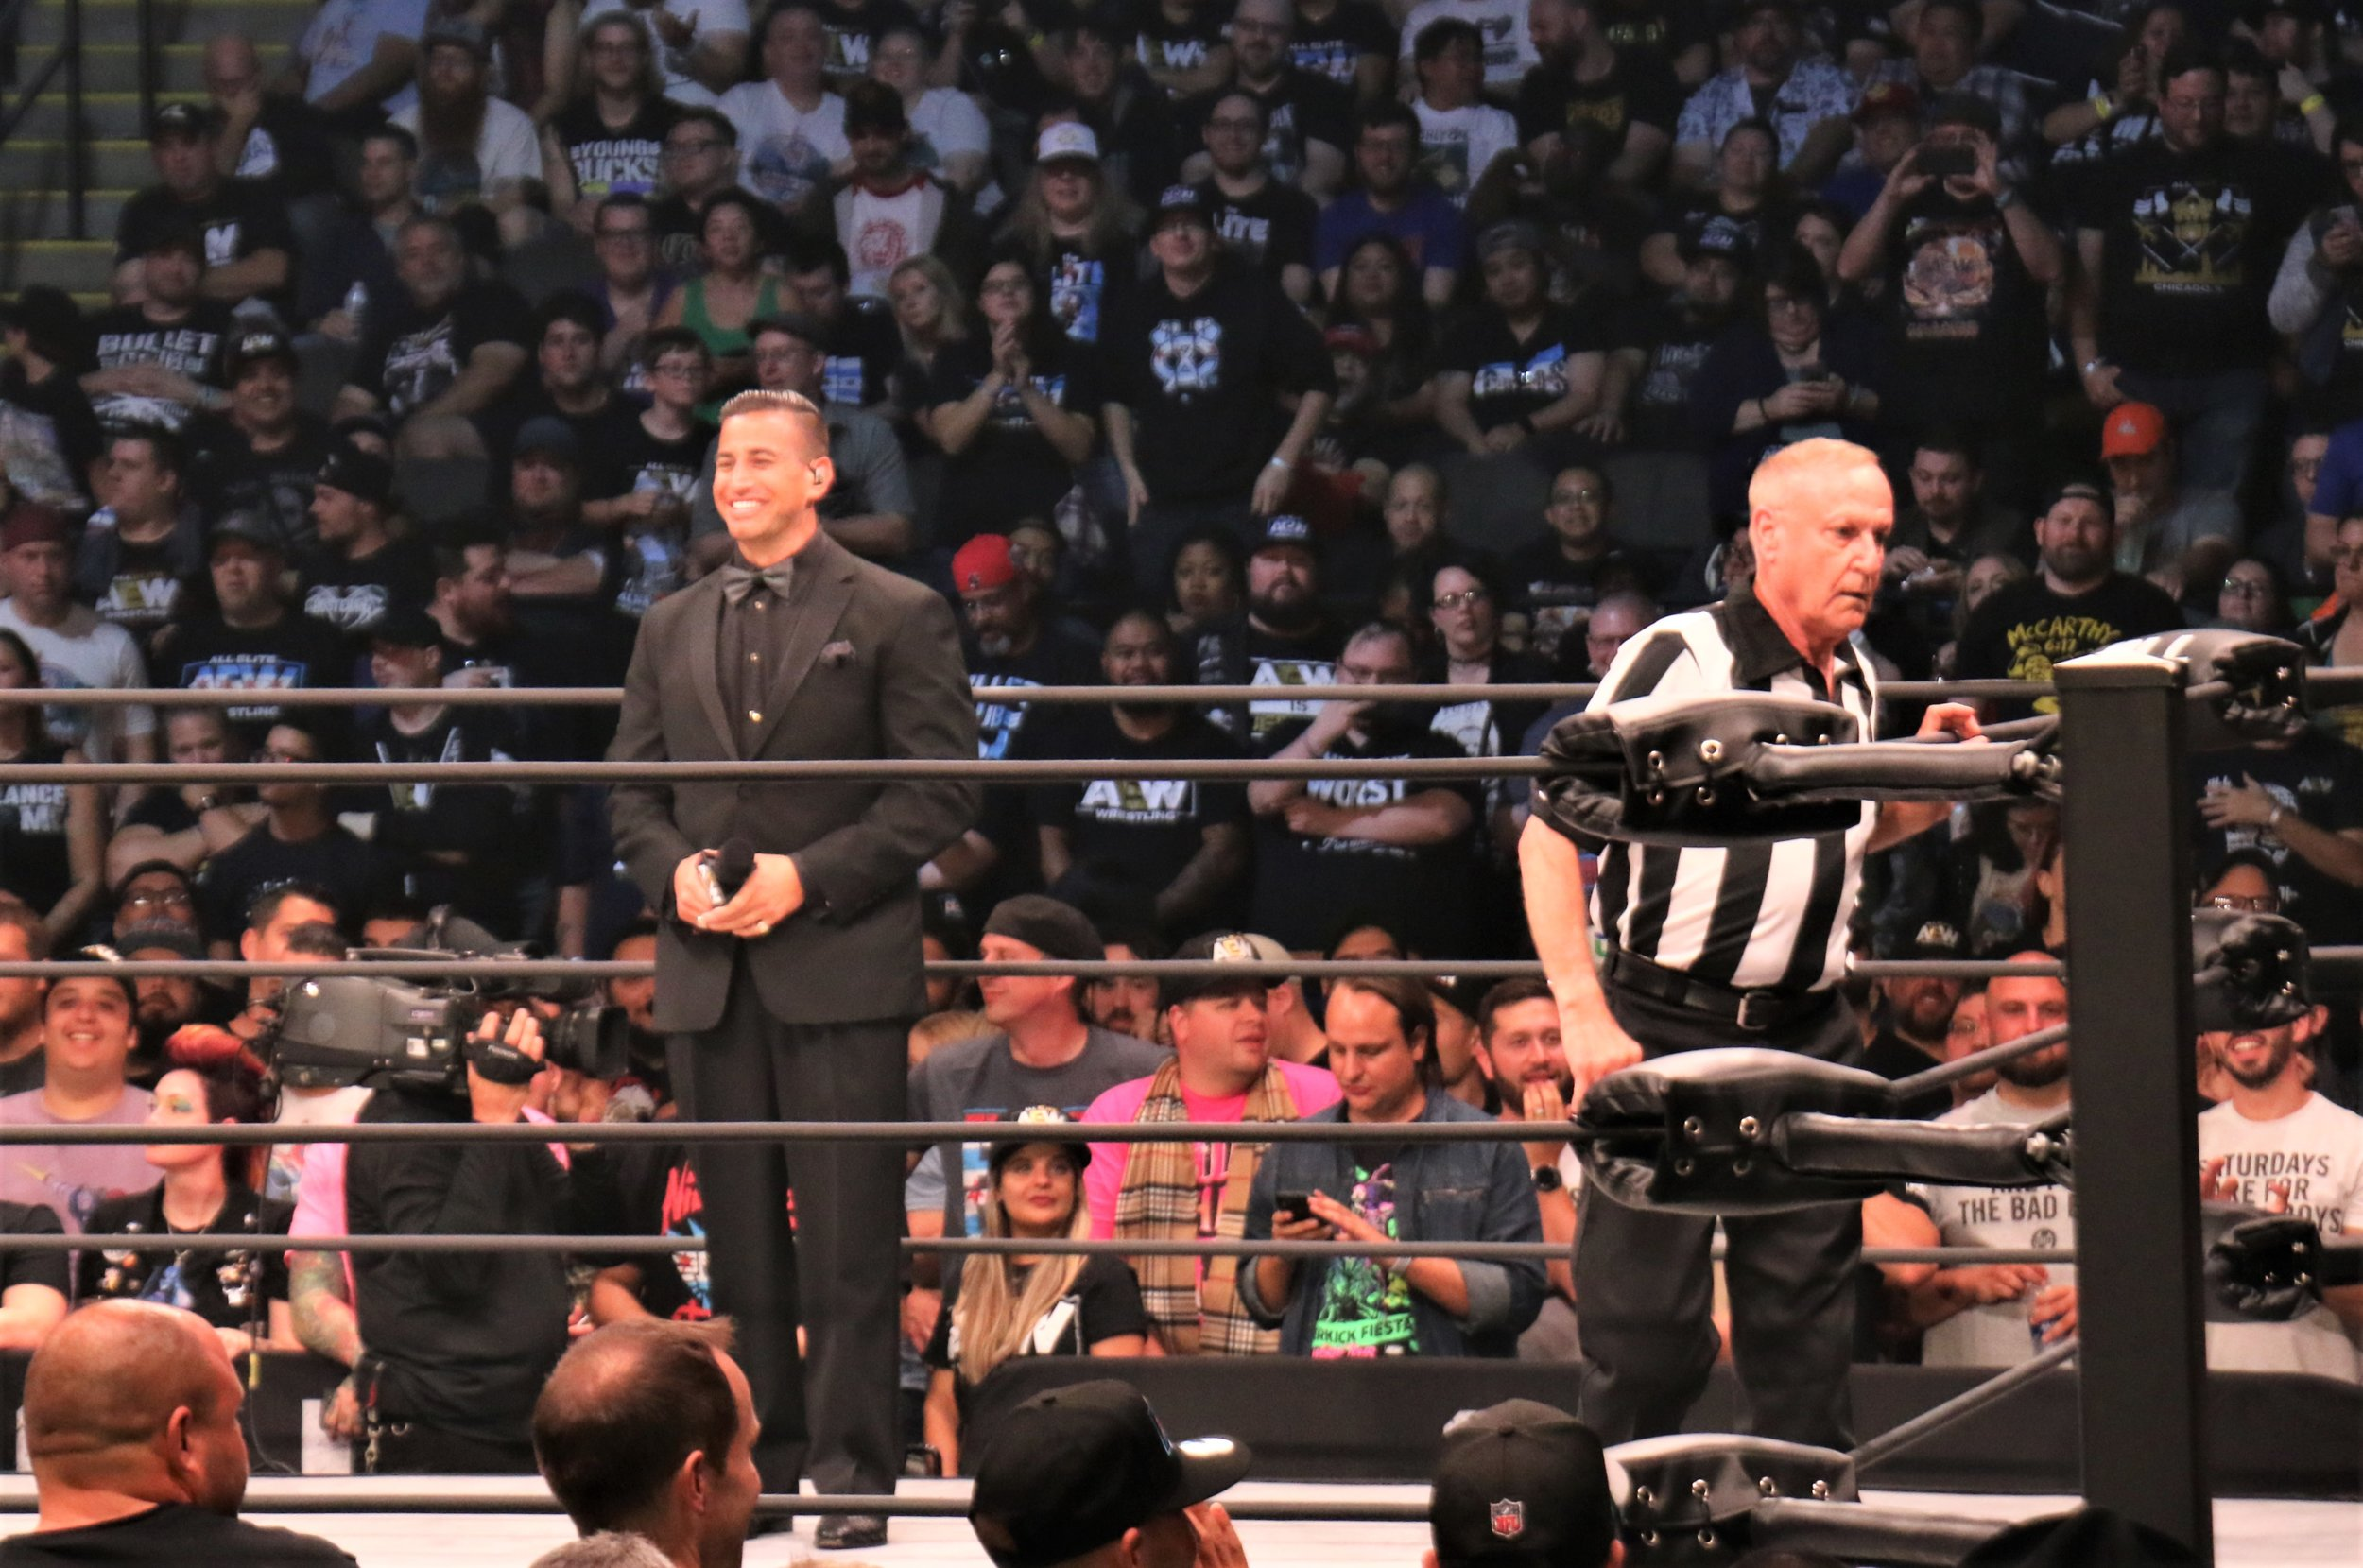 Ring announcer Justin Roberts, left, and referee Earl Hebner before the Cody Rhodes-Shawn Spears match.